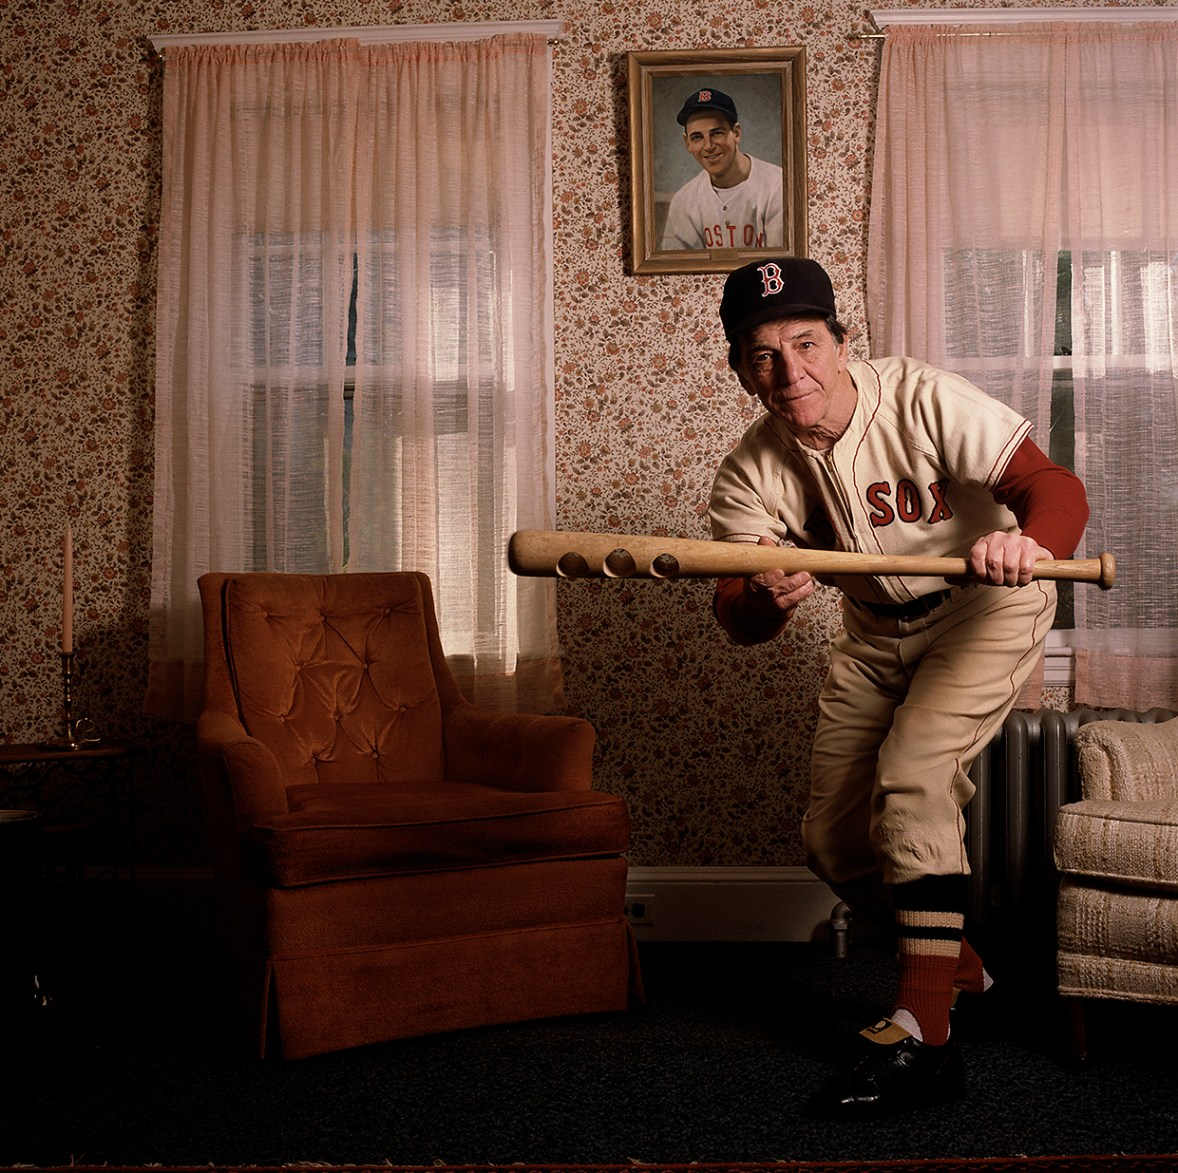 Eddie Pelligrini, Baseball Player for Boston Red Sox © William Coupon